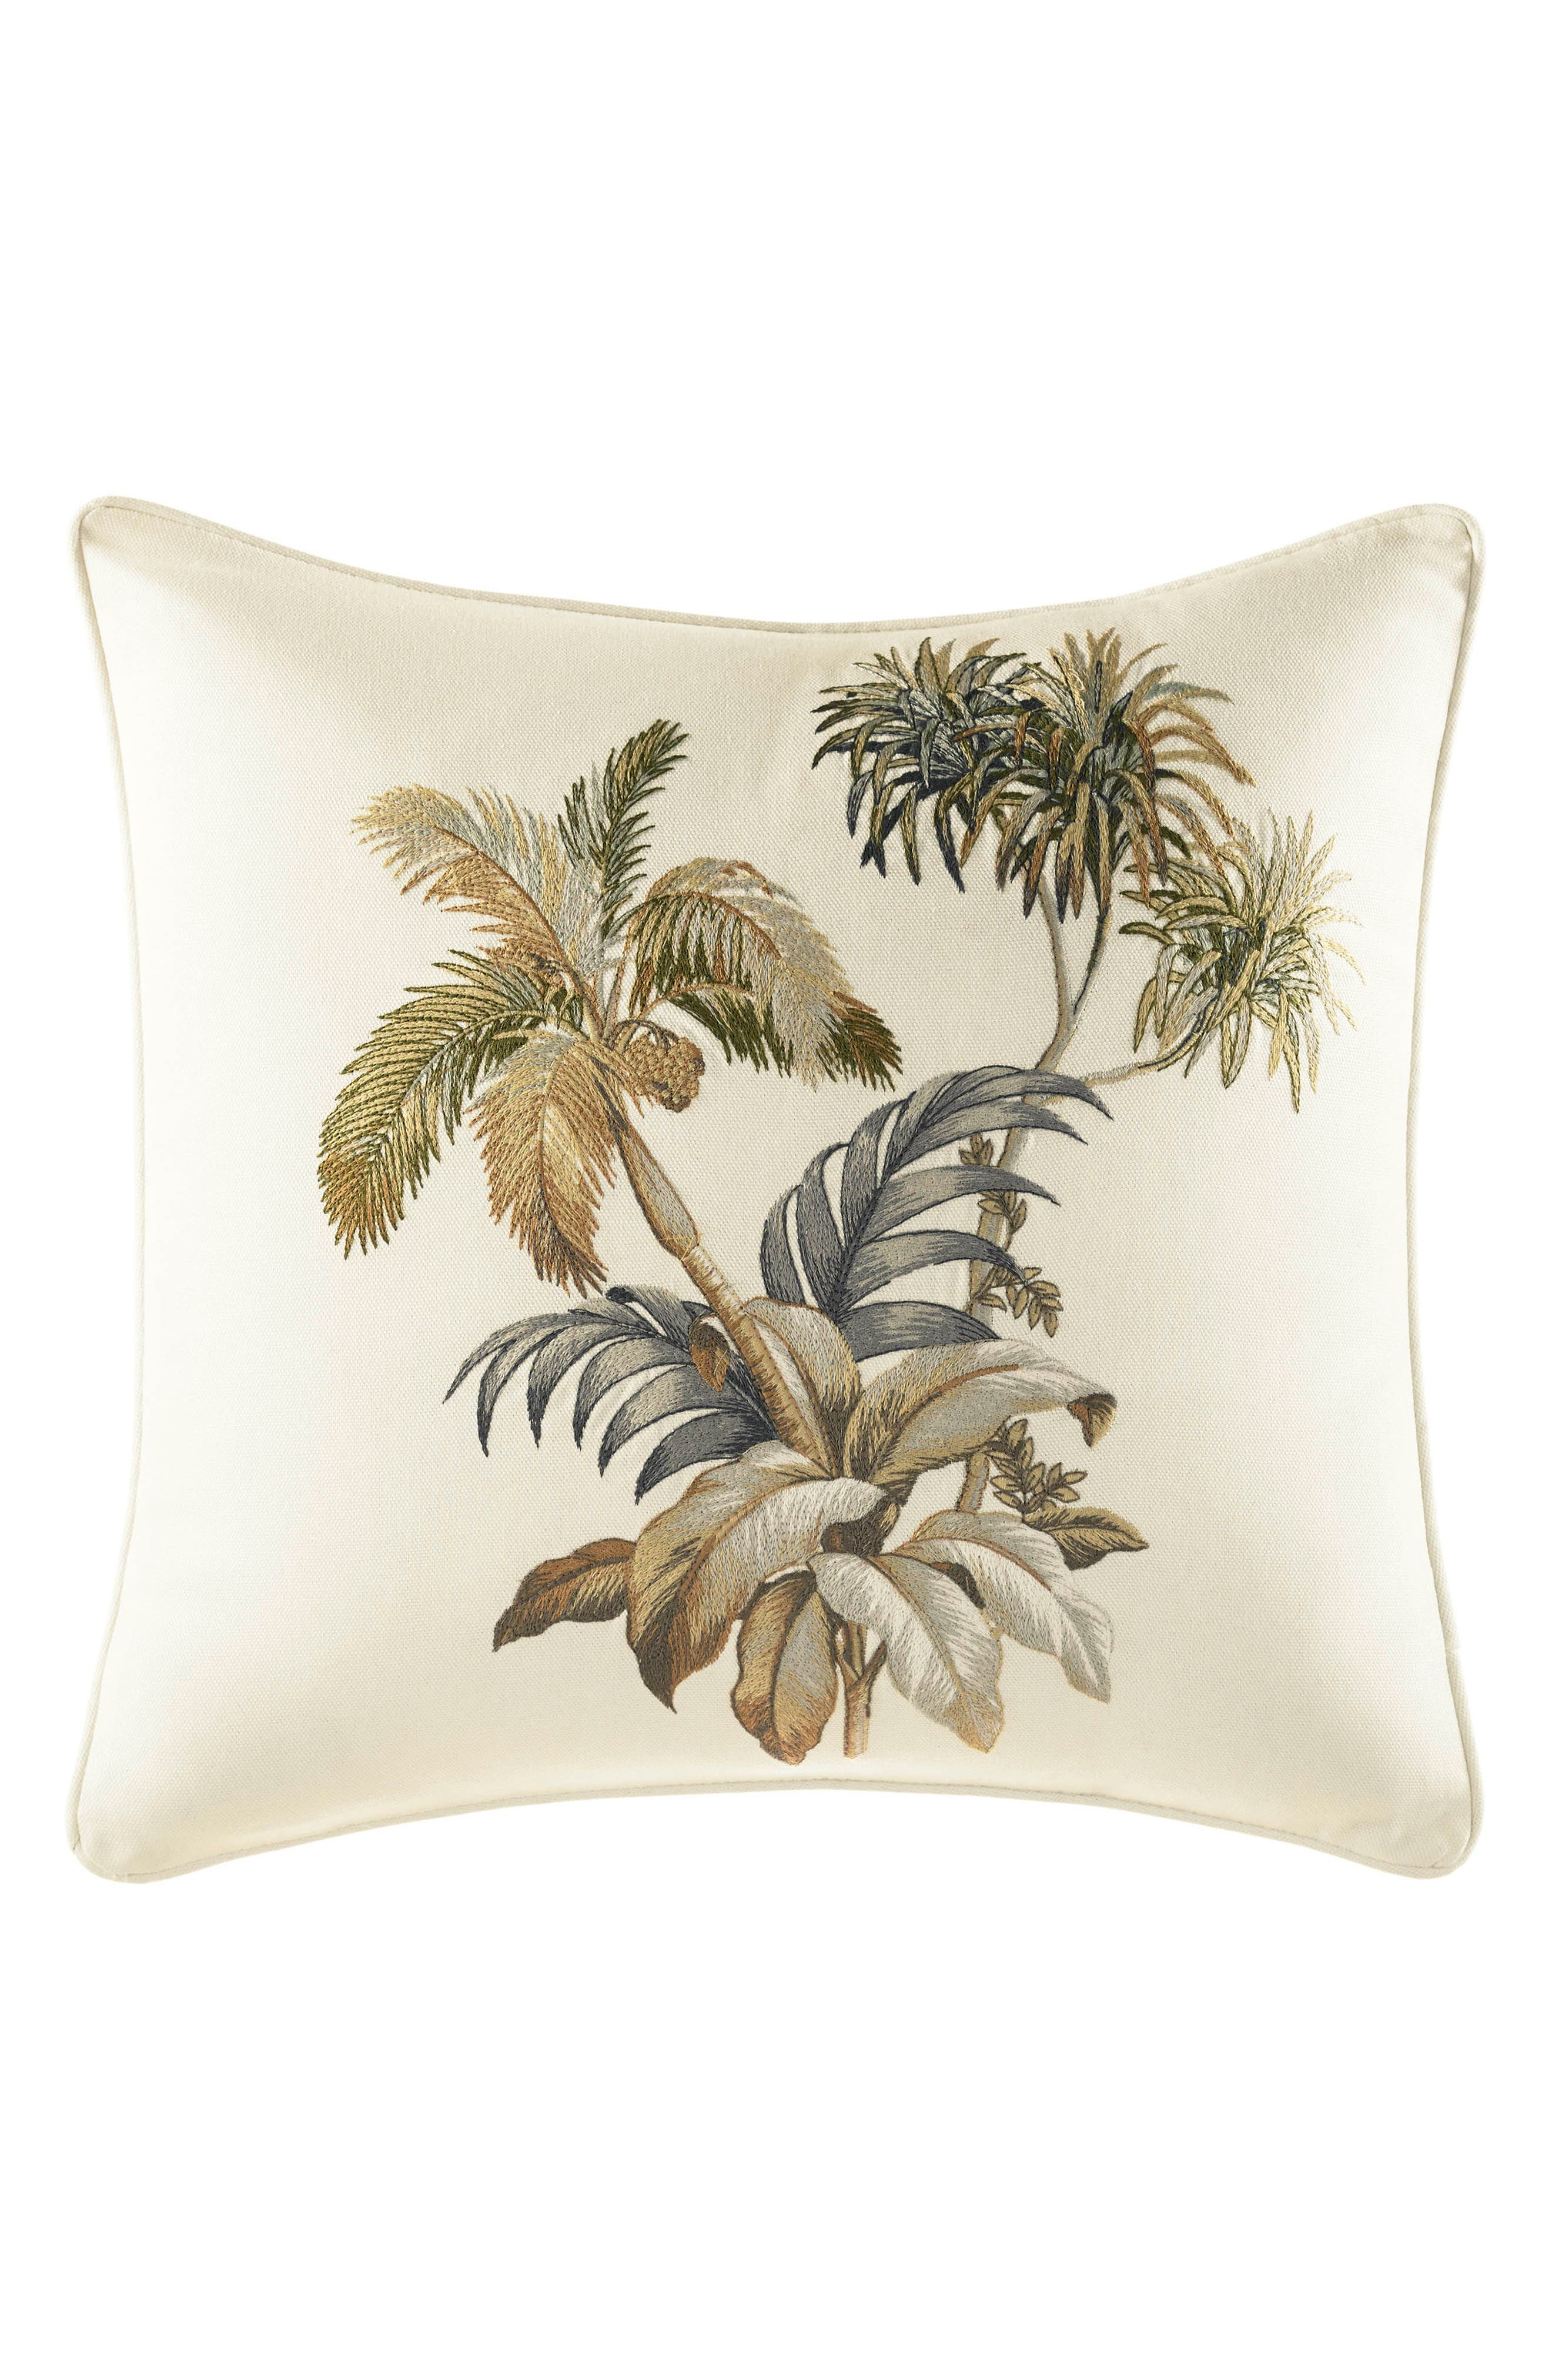 Nador Palm Embroidered Accent Pillow,                             Main thumbnail 1, color,                             NEUTRAL